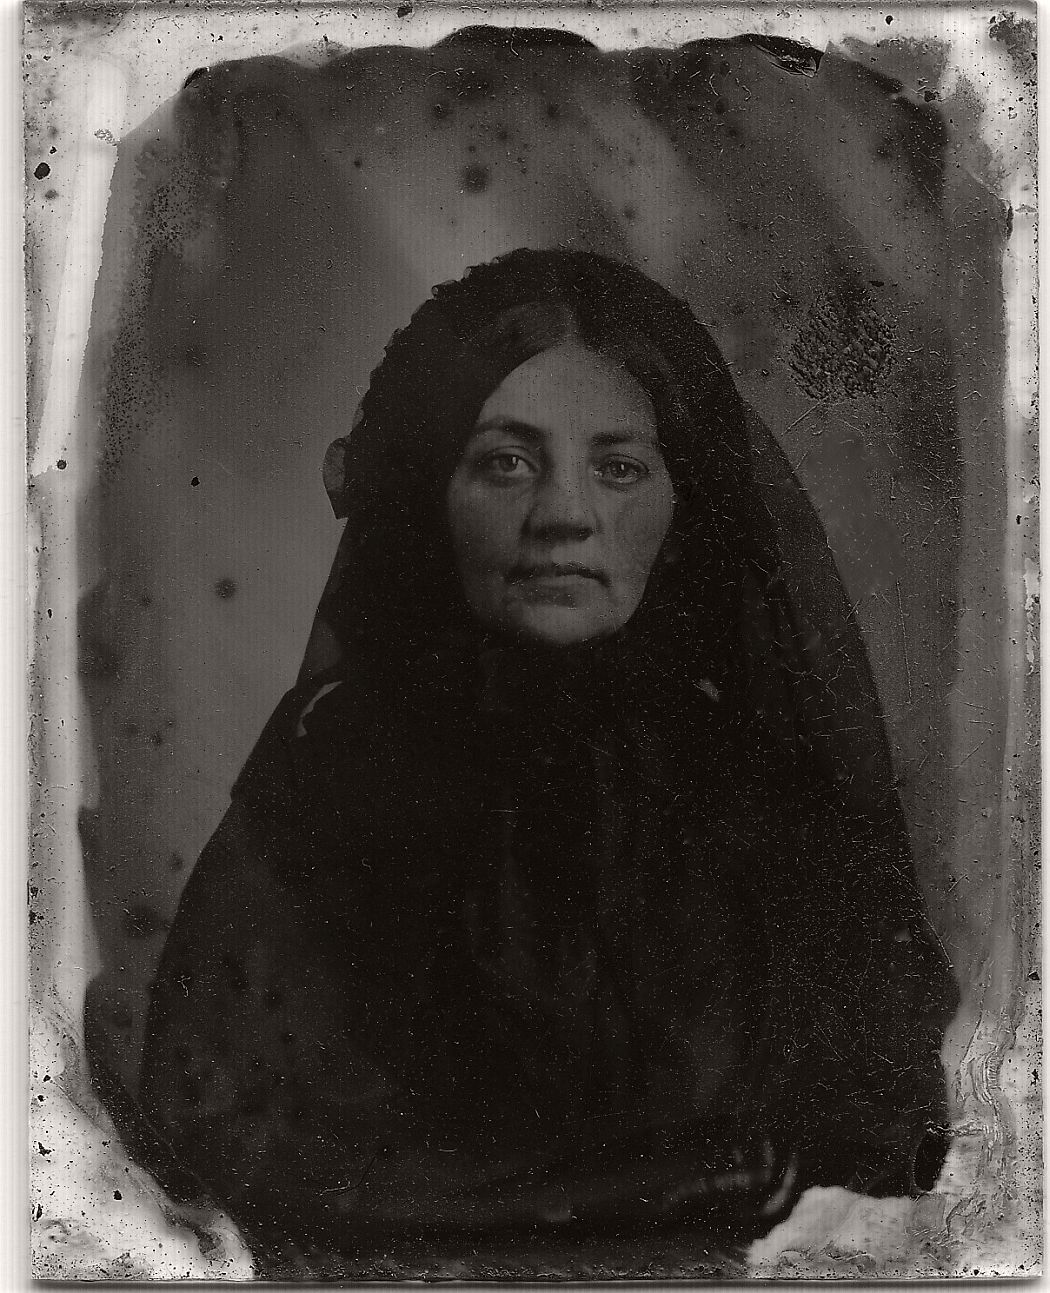 vintage-daguerreotypes-of-widows-in-mourning-victorian-era-1800s-07